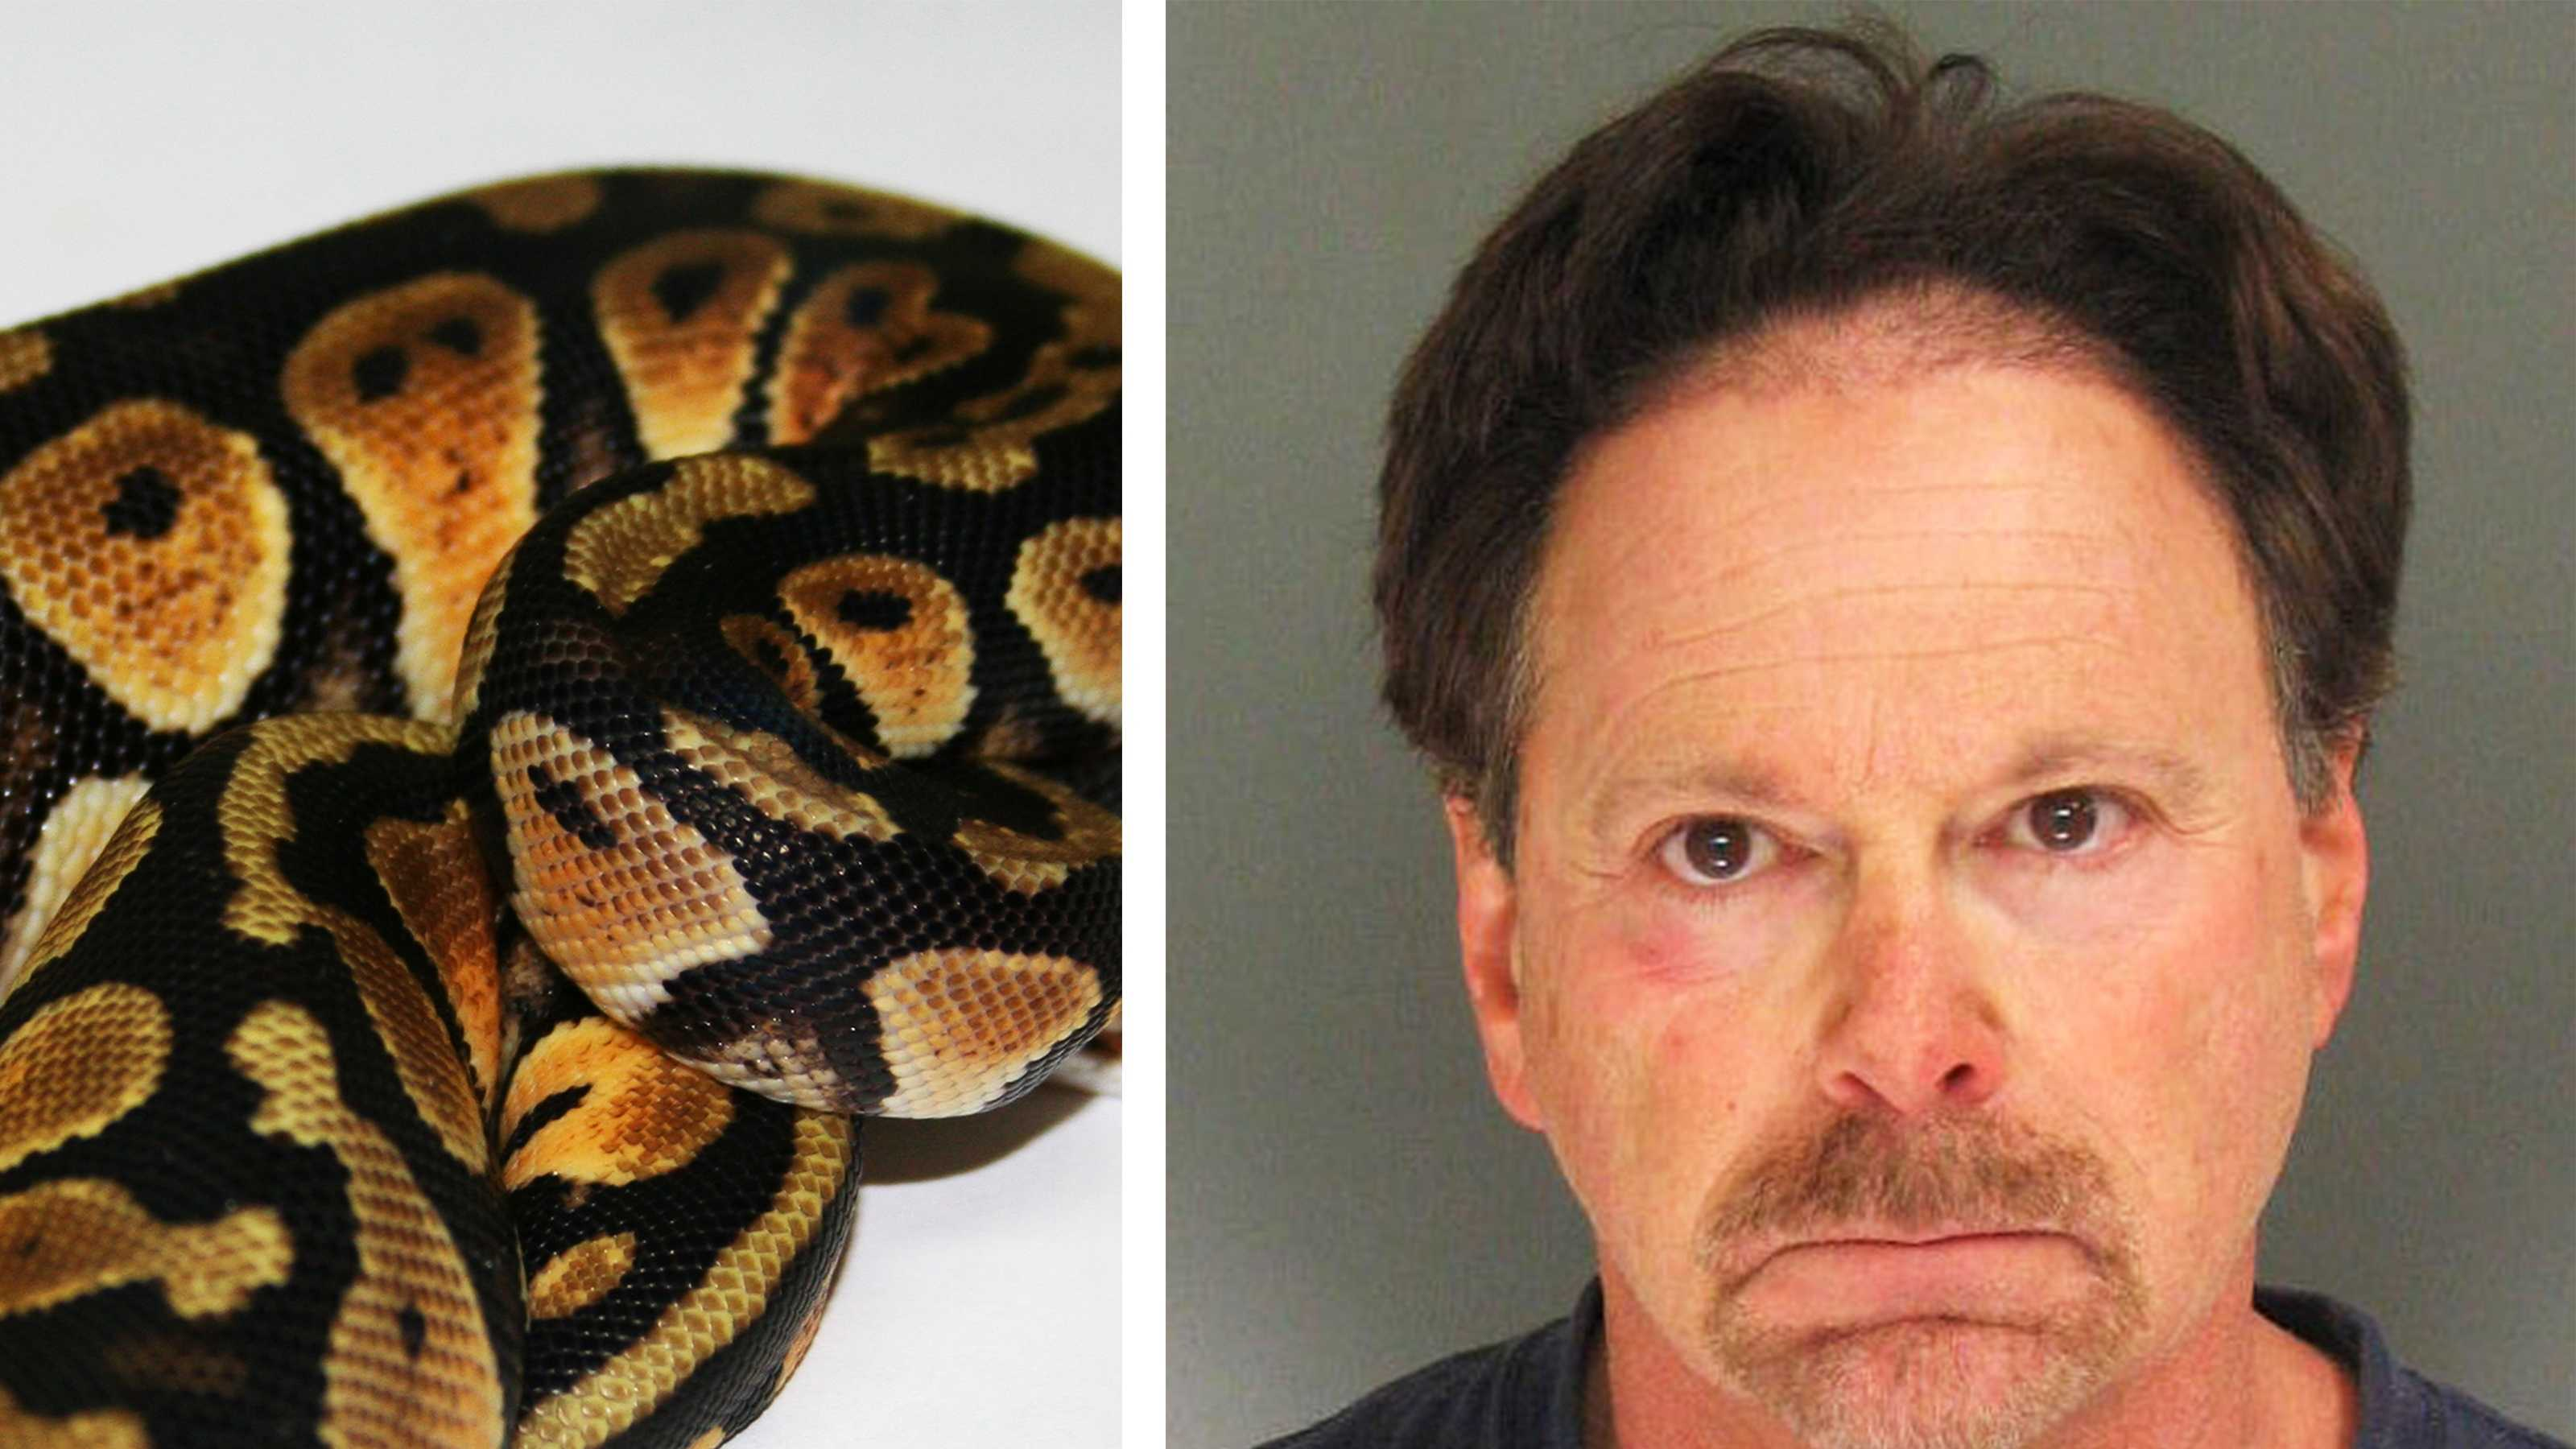 Deputies said Steven Weissman lured children into his Soquel house with snakes.